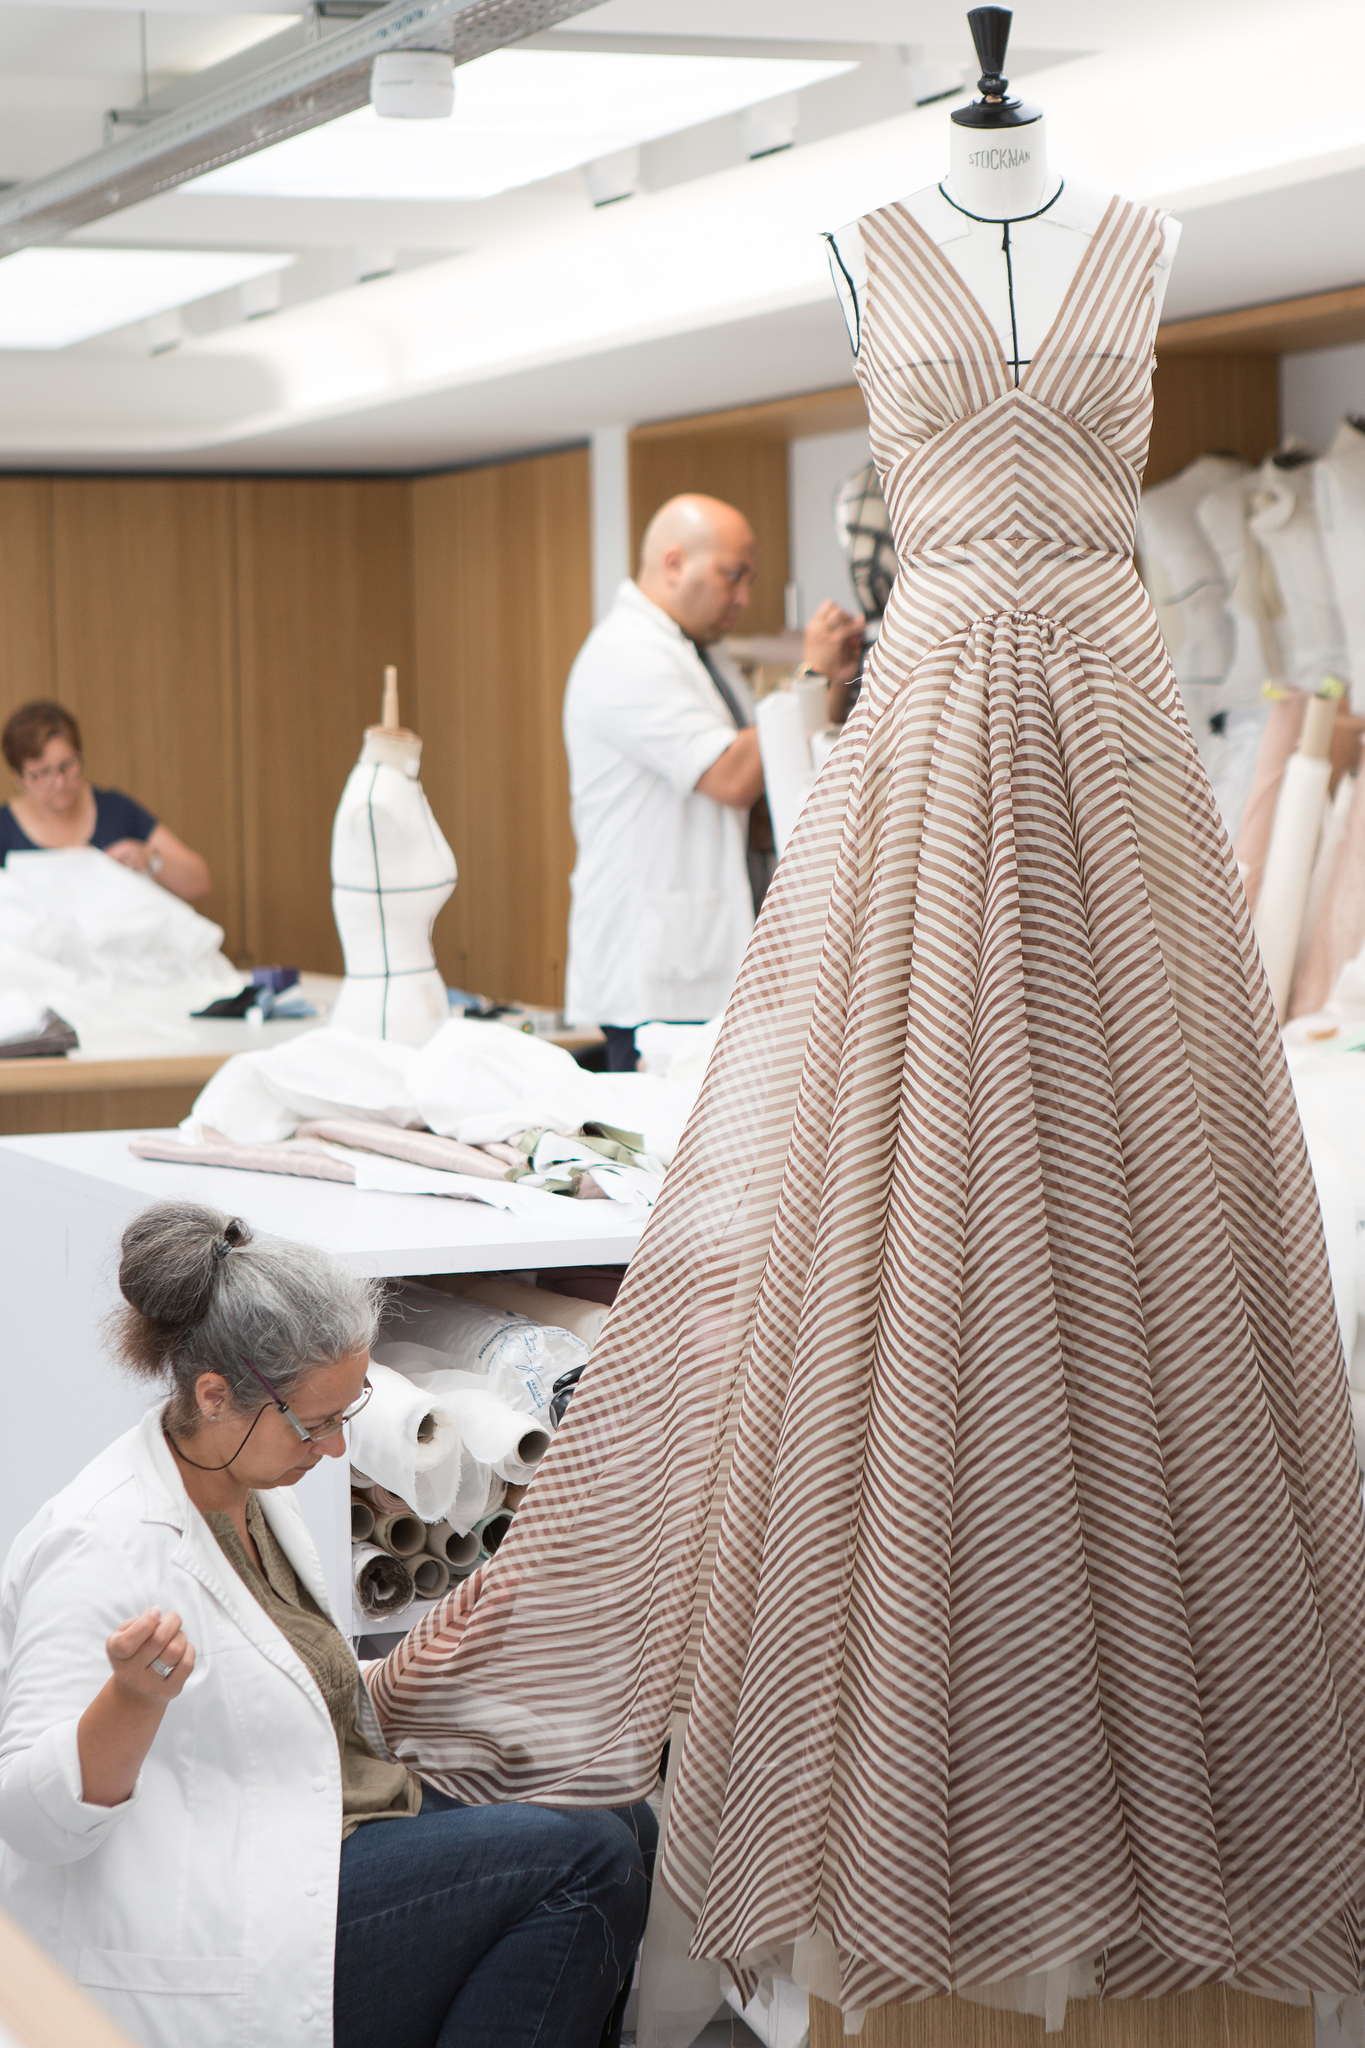 Workers in the Dior couture workshop.